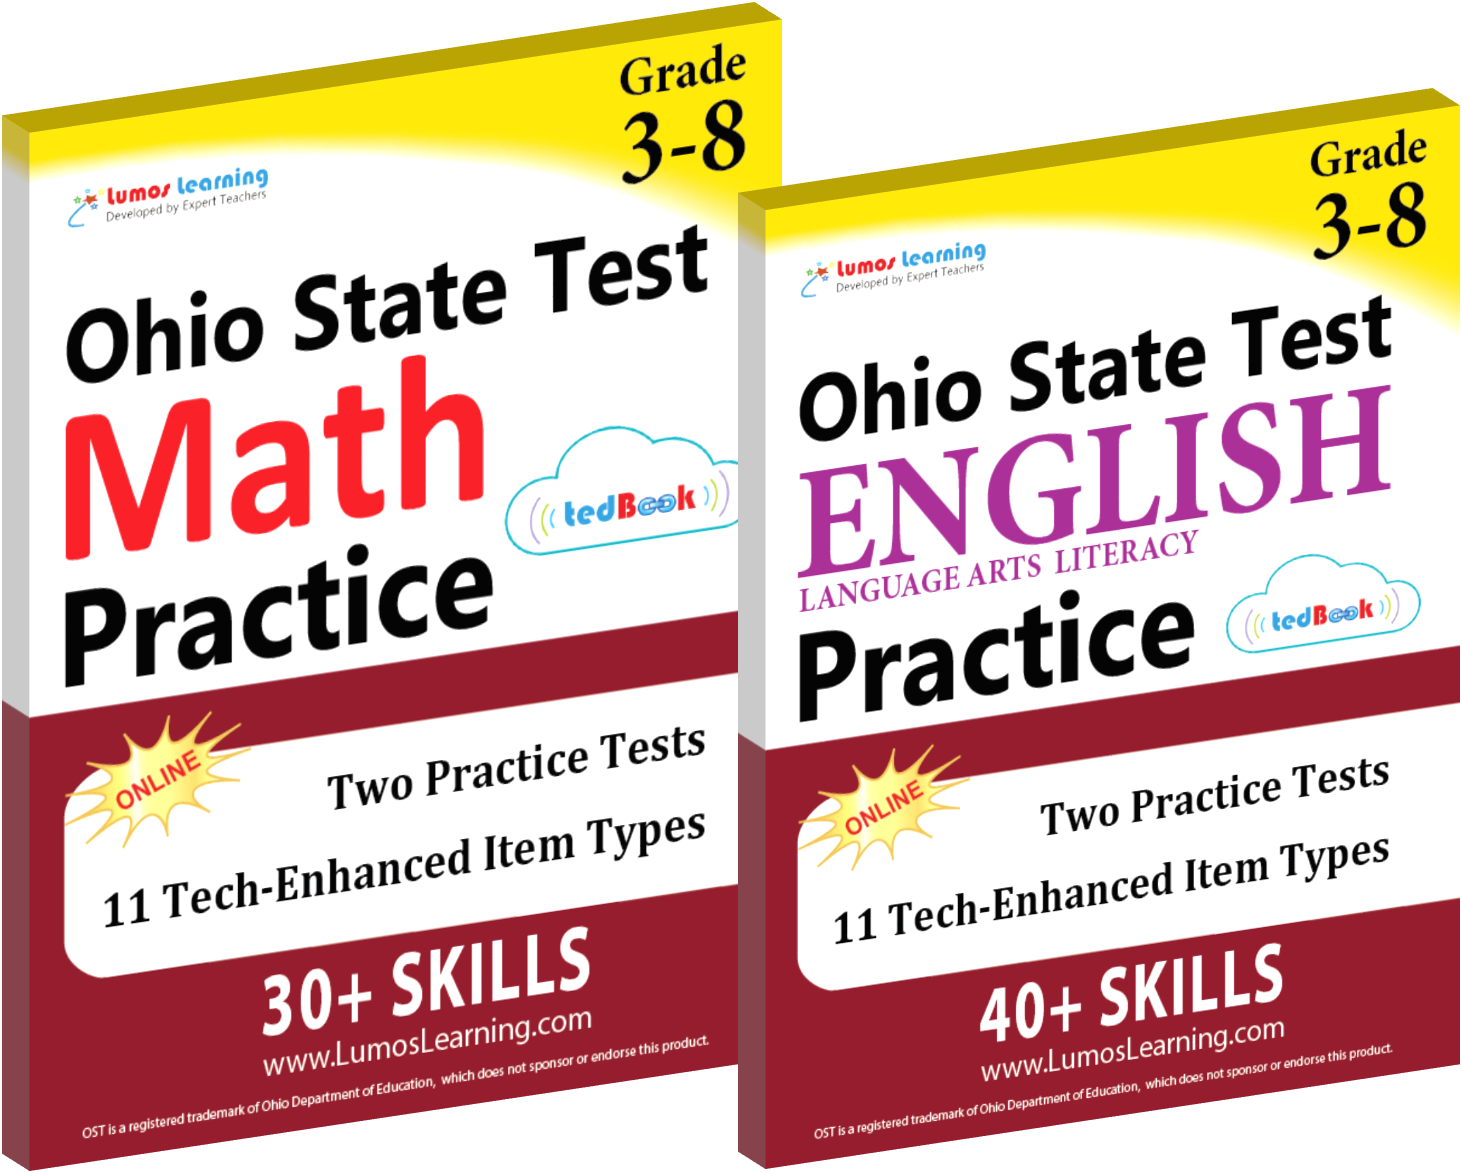 Printed Practice Workbooks and Online Practice Tests for OST